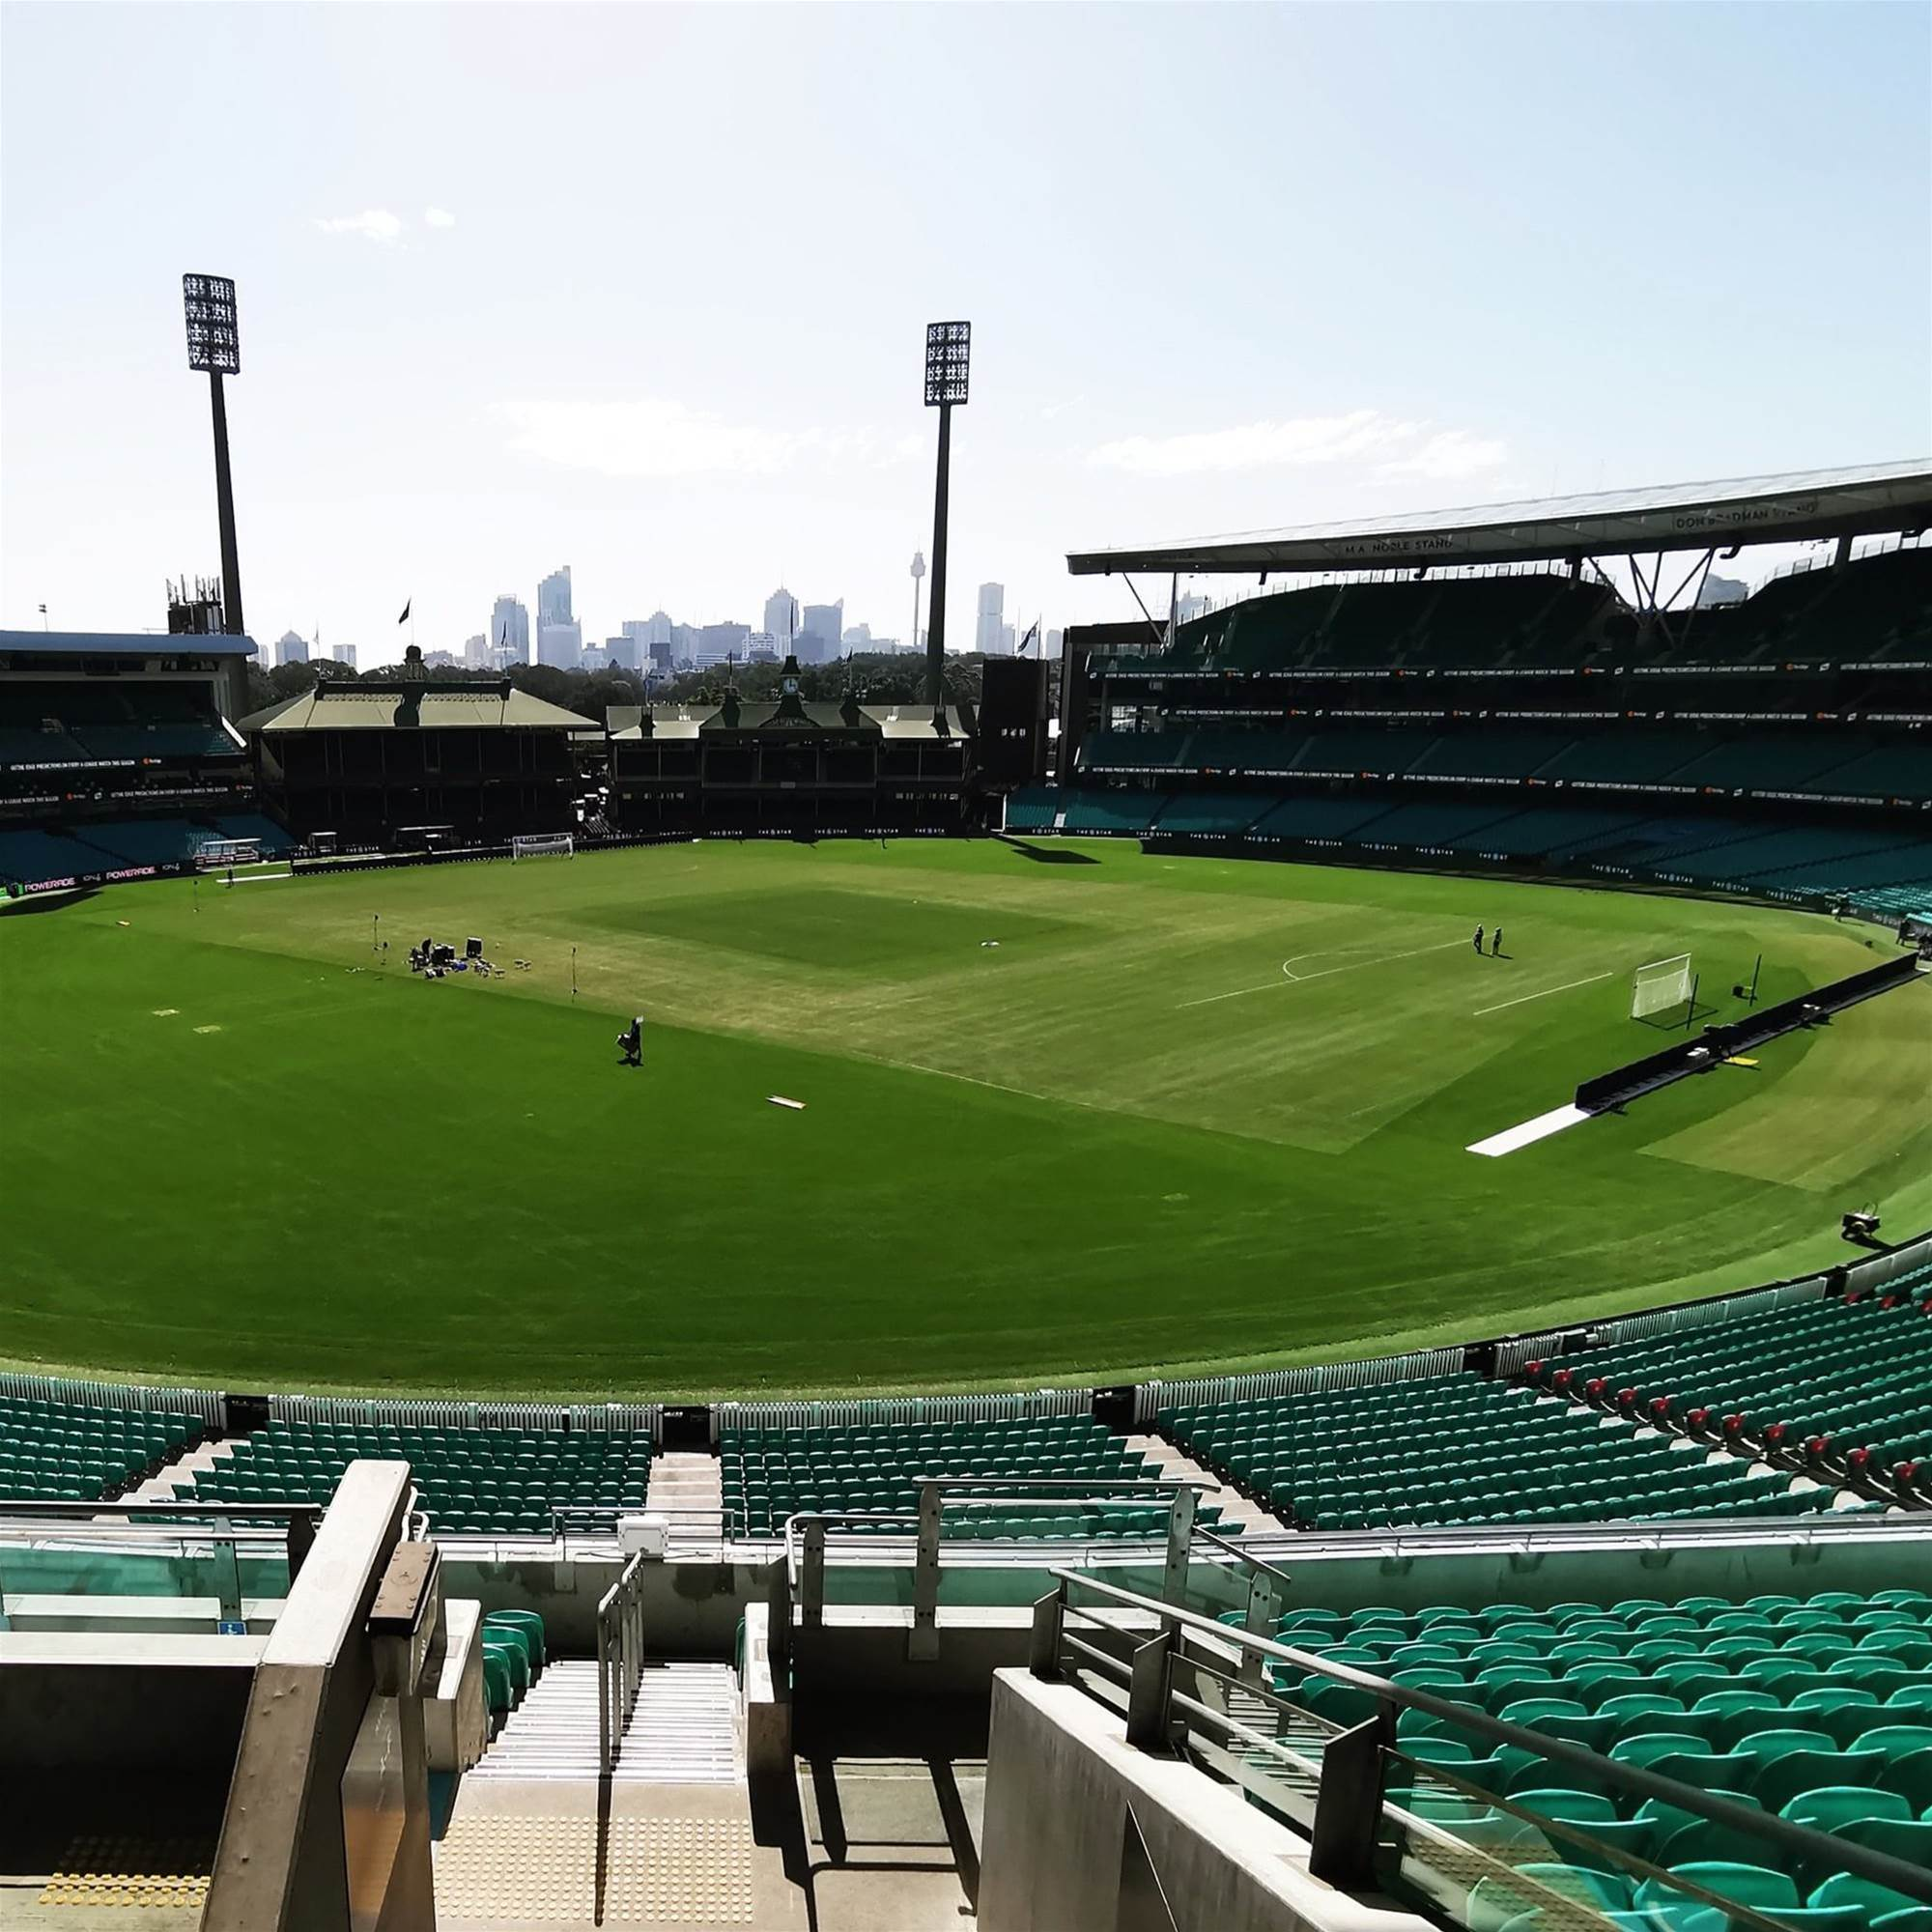 Ditch the pitch: Fury over SCG